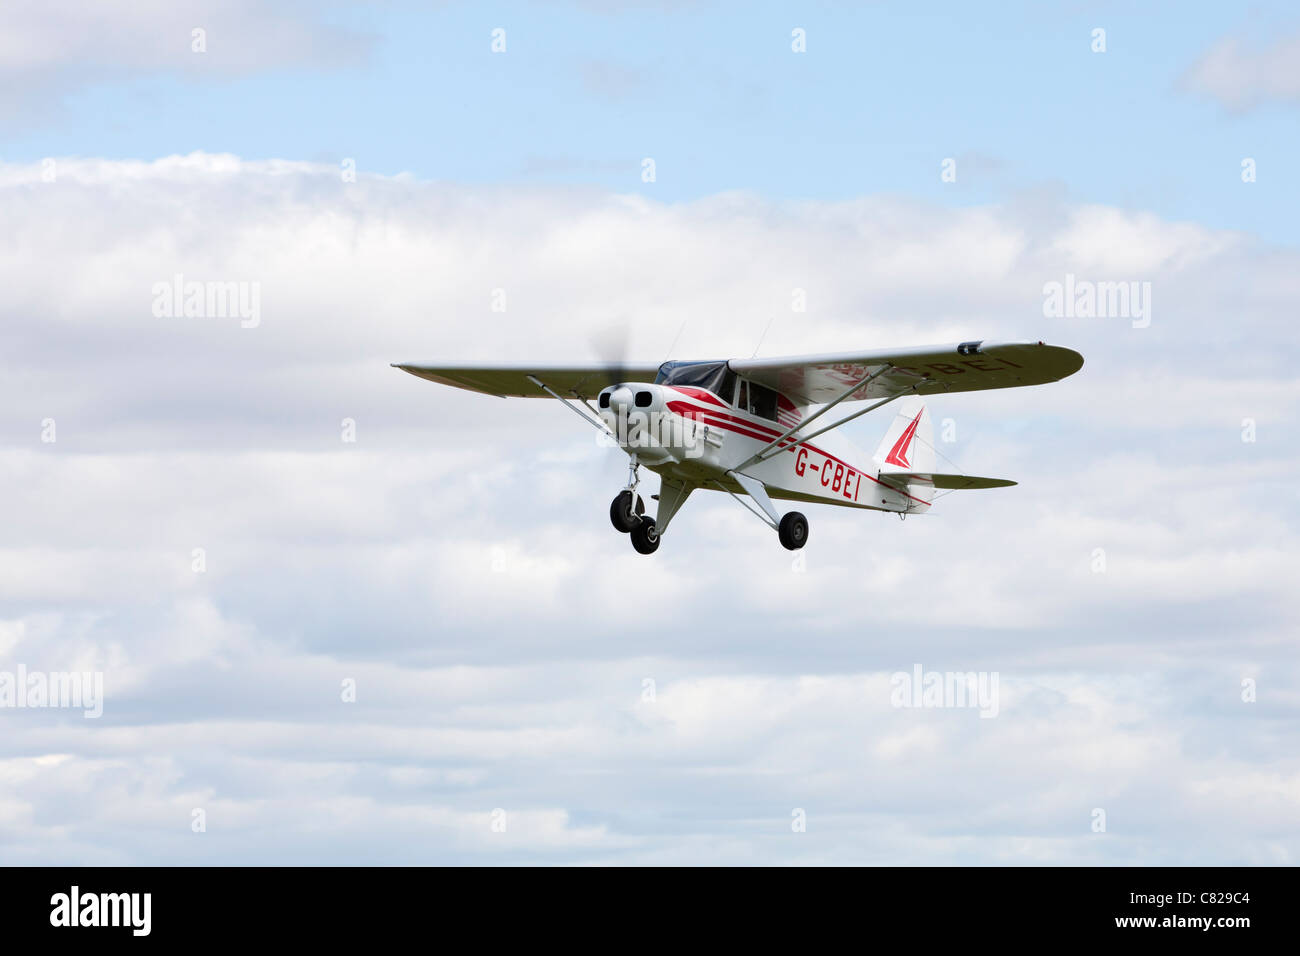 Piper PA-22-108 Colt G-CBEI in flight Stock Photo: 39389284 - Alamy